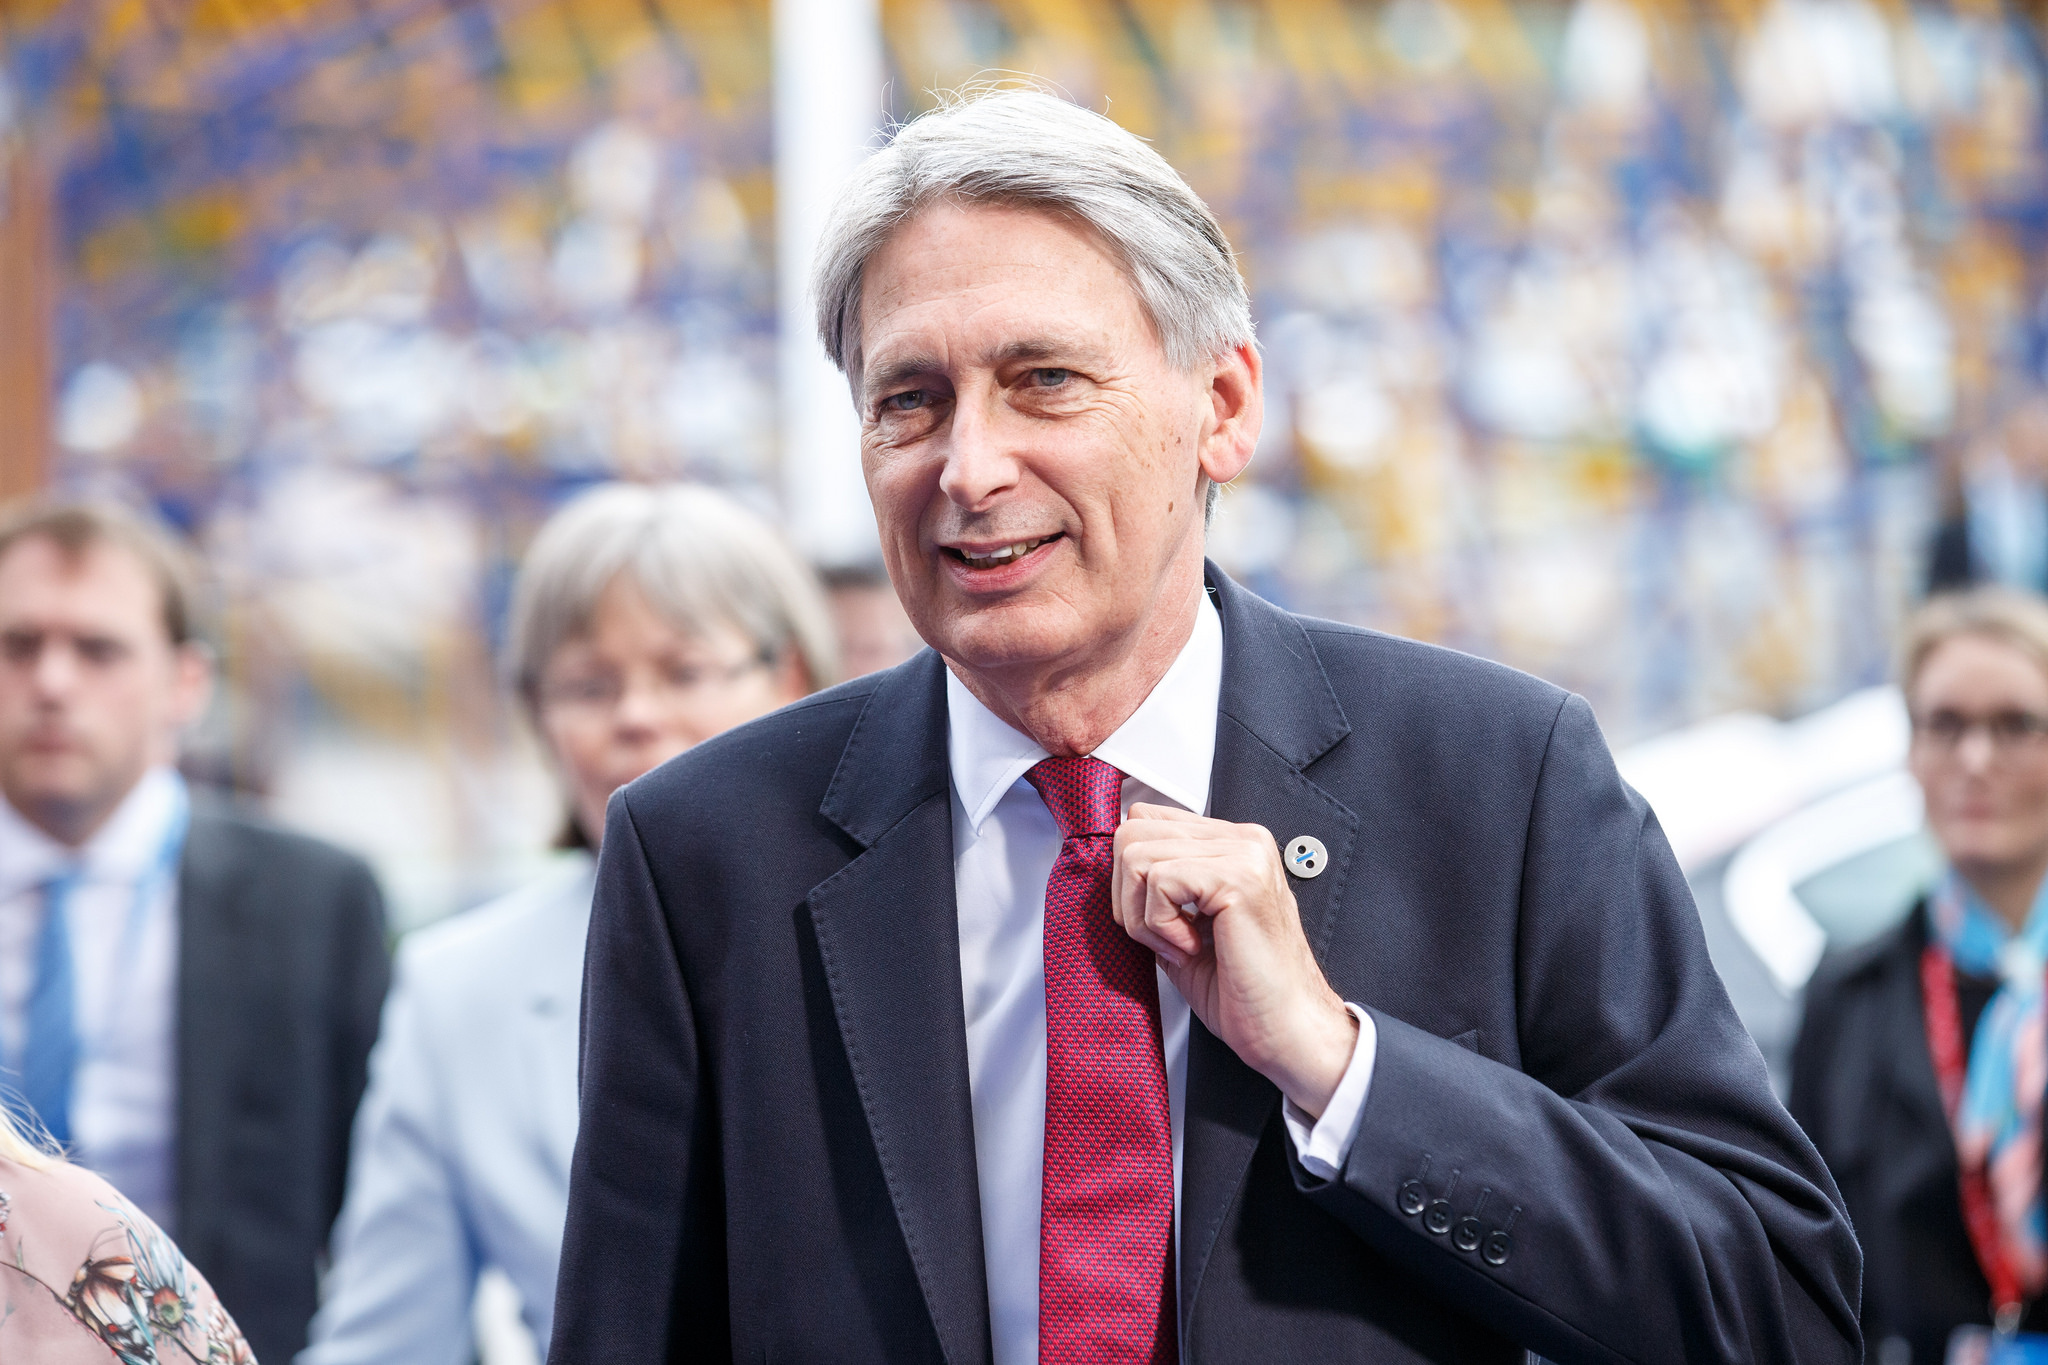 Chancellor to launch consultation on plastics tax